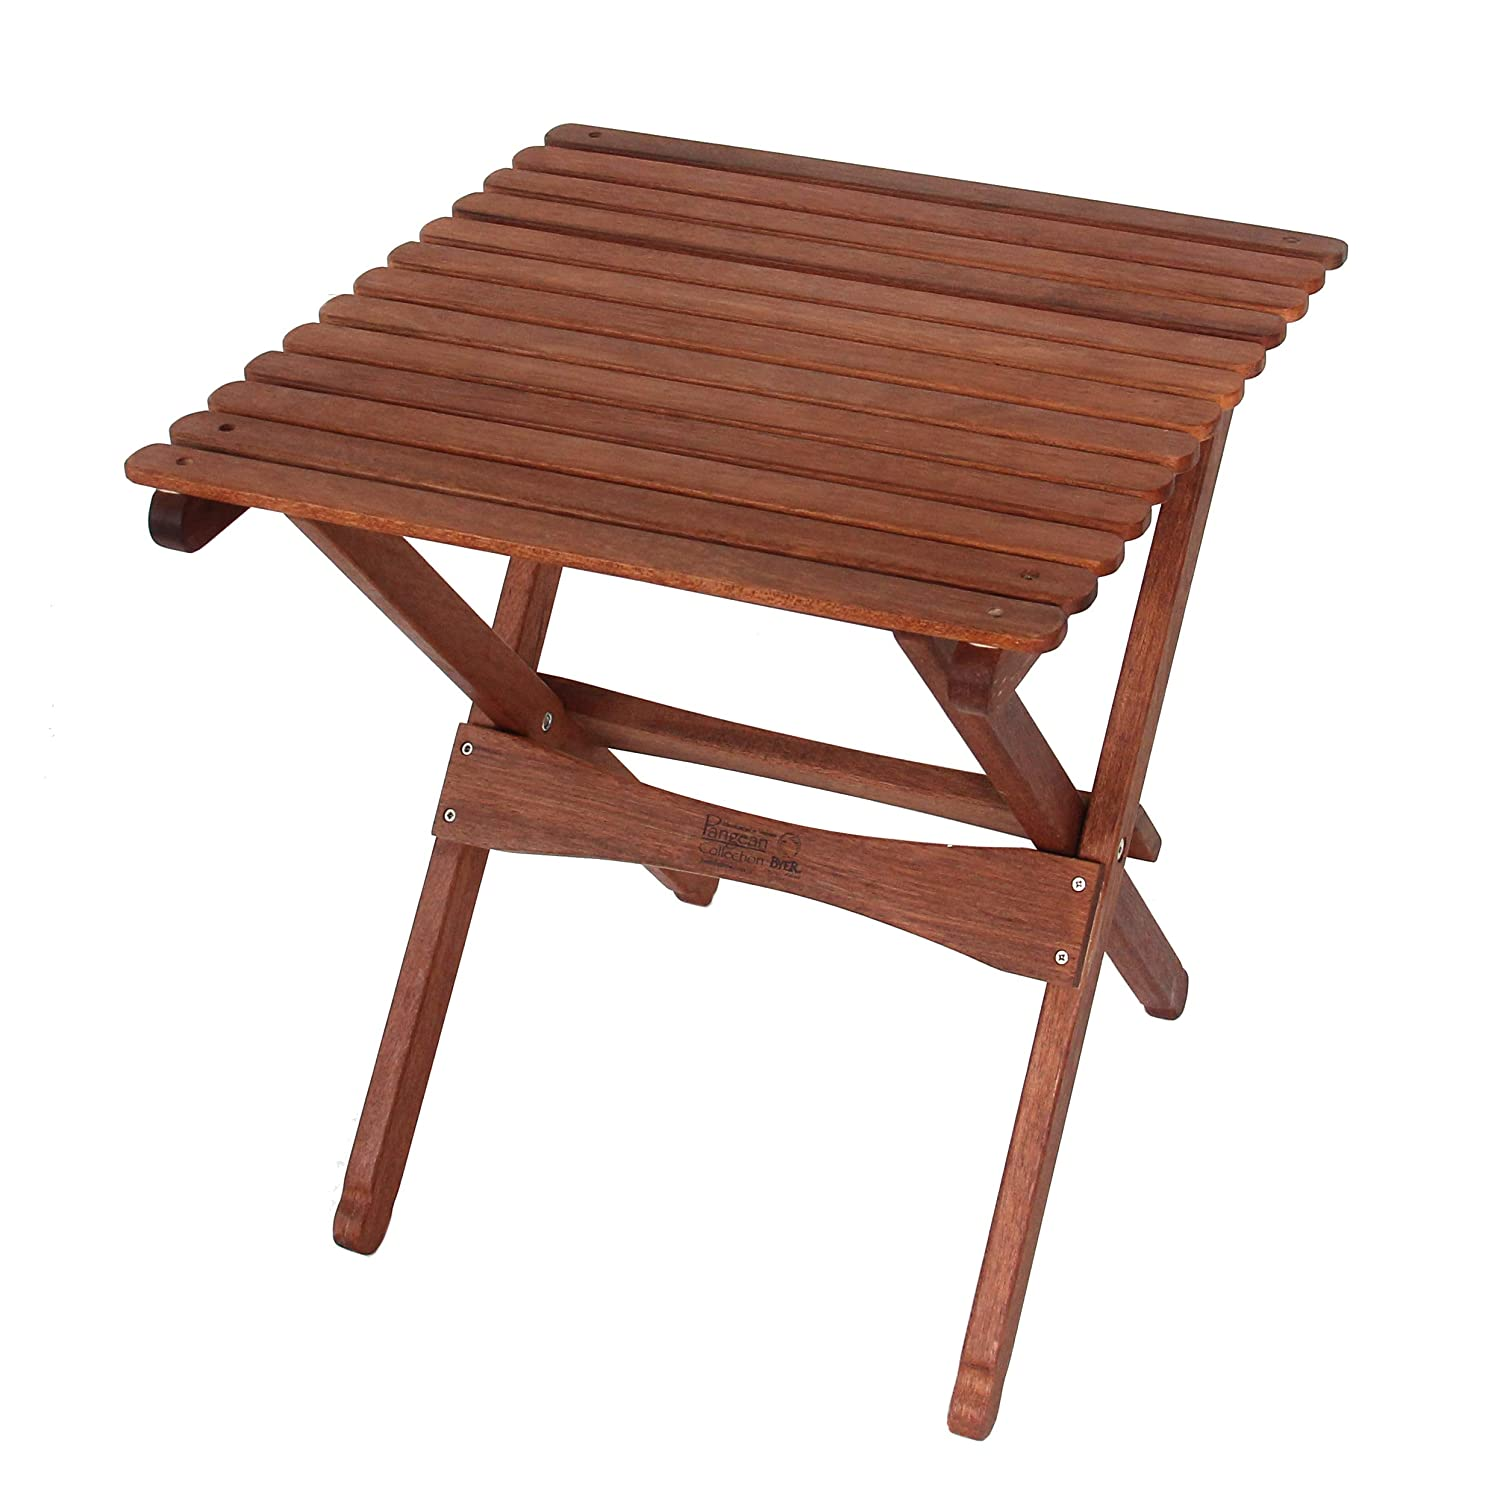 BYER OF MAINE, Pangean, Folding Wood Table, Large, Easy to Fold and Carry, Hardwood, Folding Patio Table, Perfect for Camping, Wooden Camp Table, Matches Furniture in The Pangean Line, Single